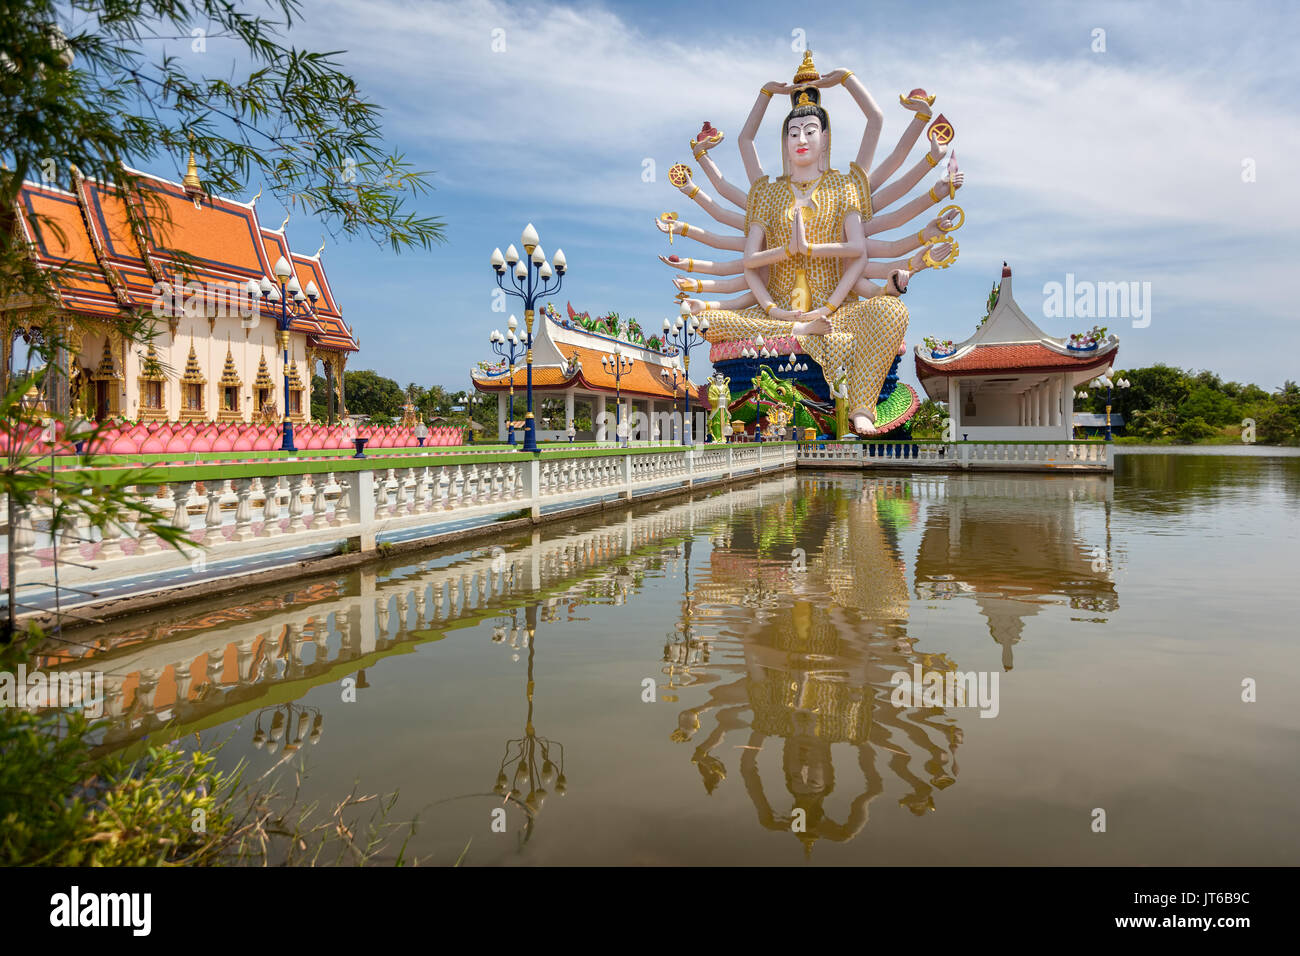 Statue of eighteen arms of Guanyin Avalokiteśvara or Guanjin Kwan Yin, Goddess of Mercy and Compassion, Wat Plai Stock Photo